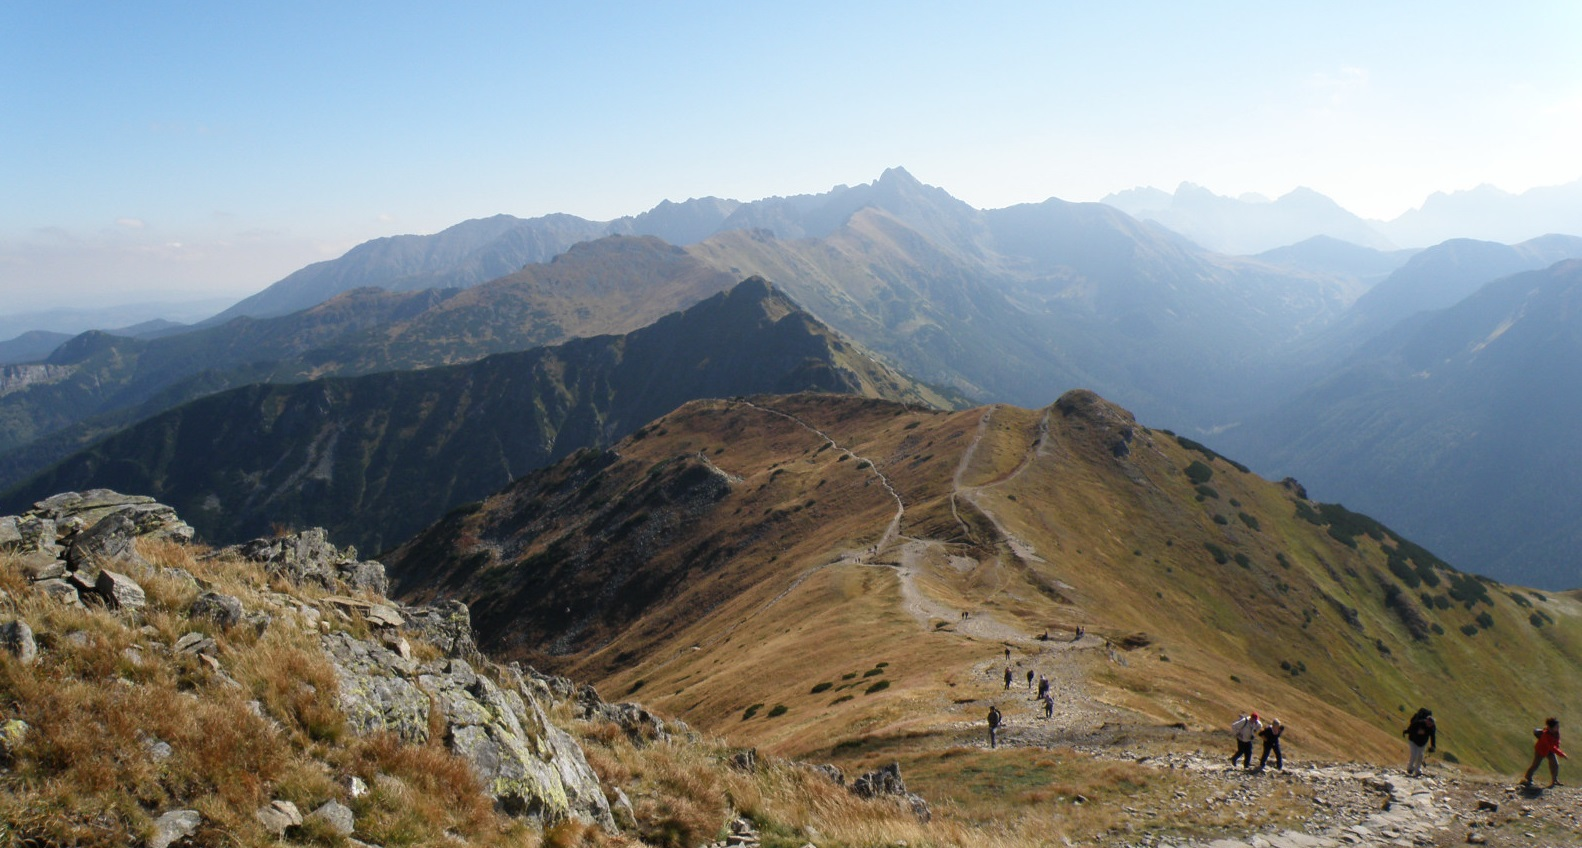 Hiking The Red Peaks in Tatra mountains. Find motivation to leave your couch this spring!